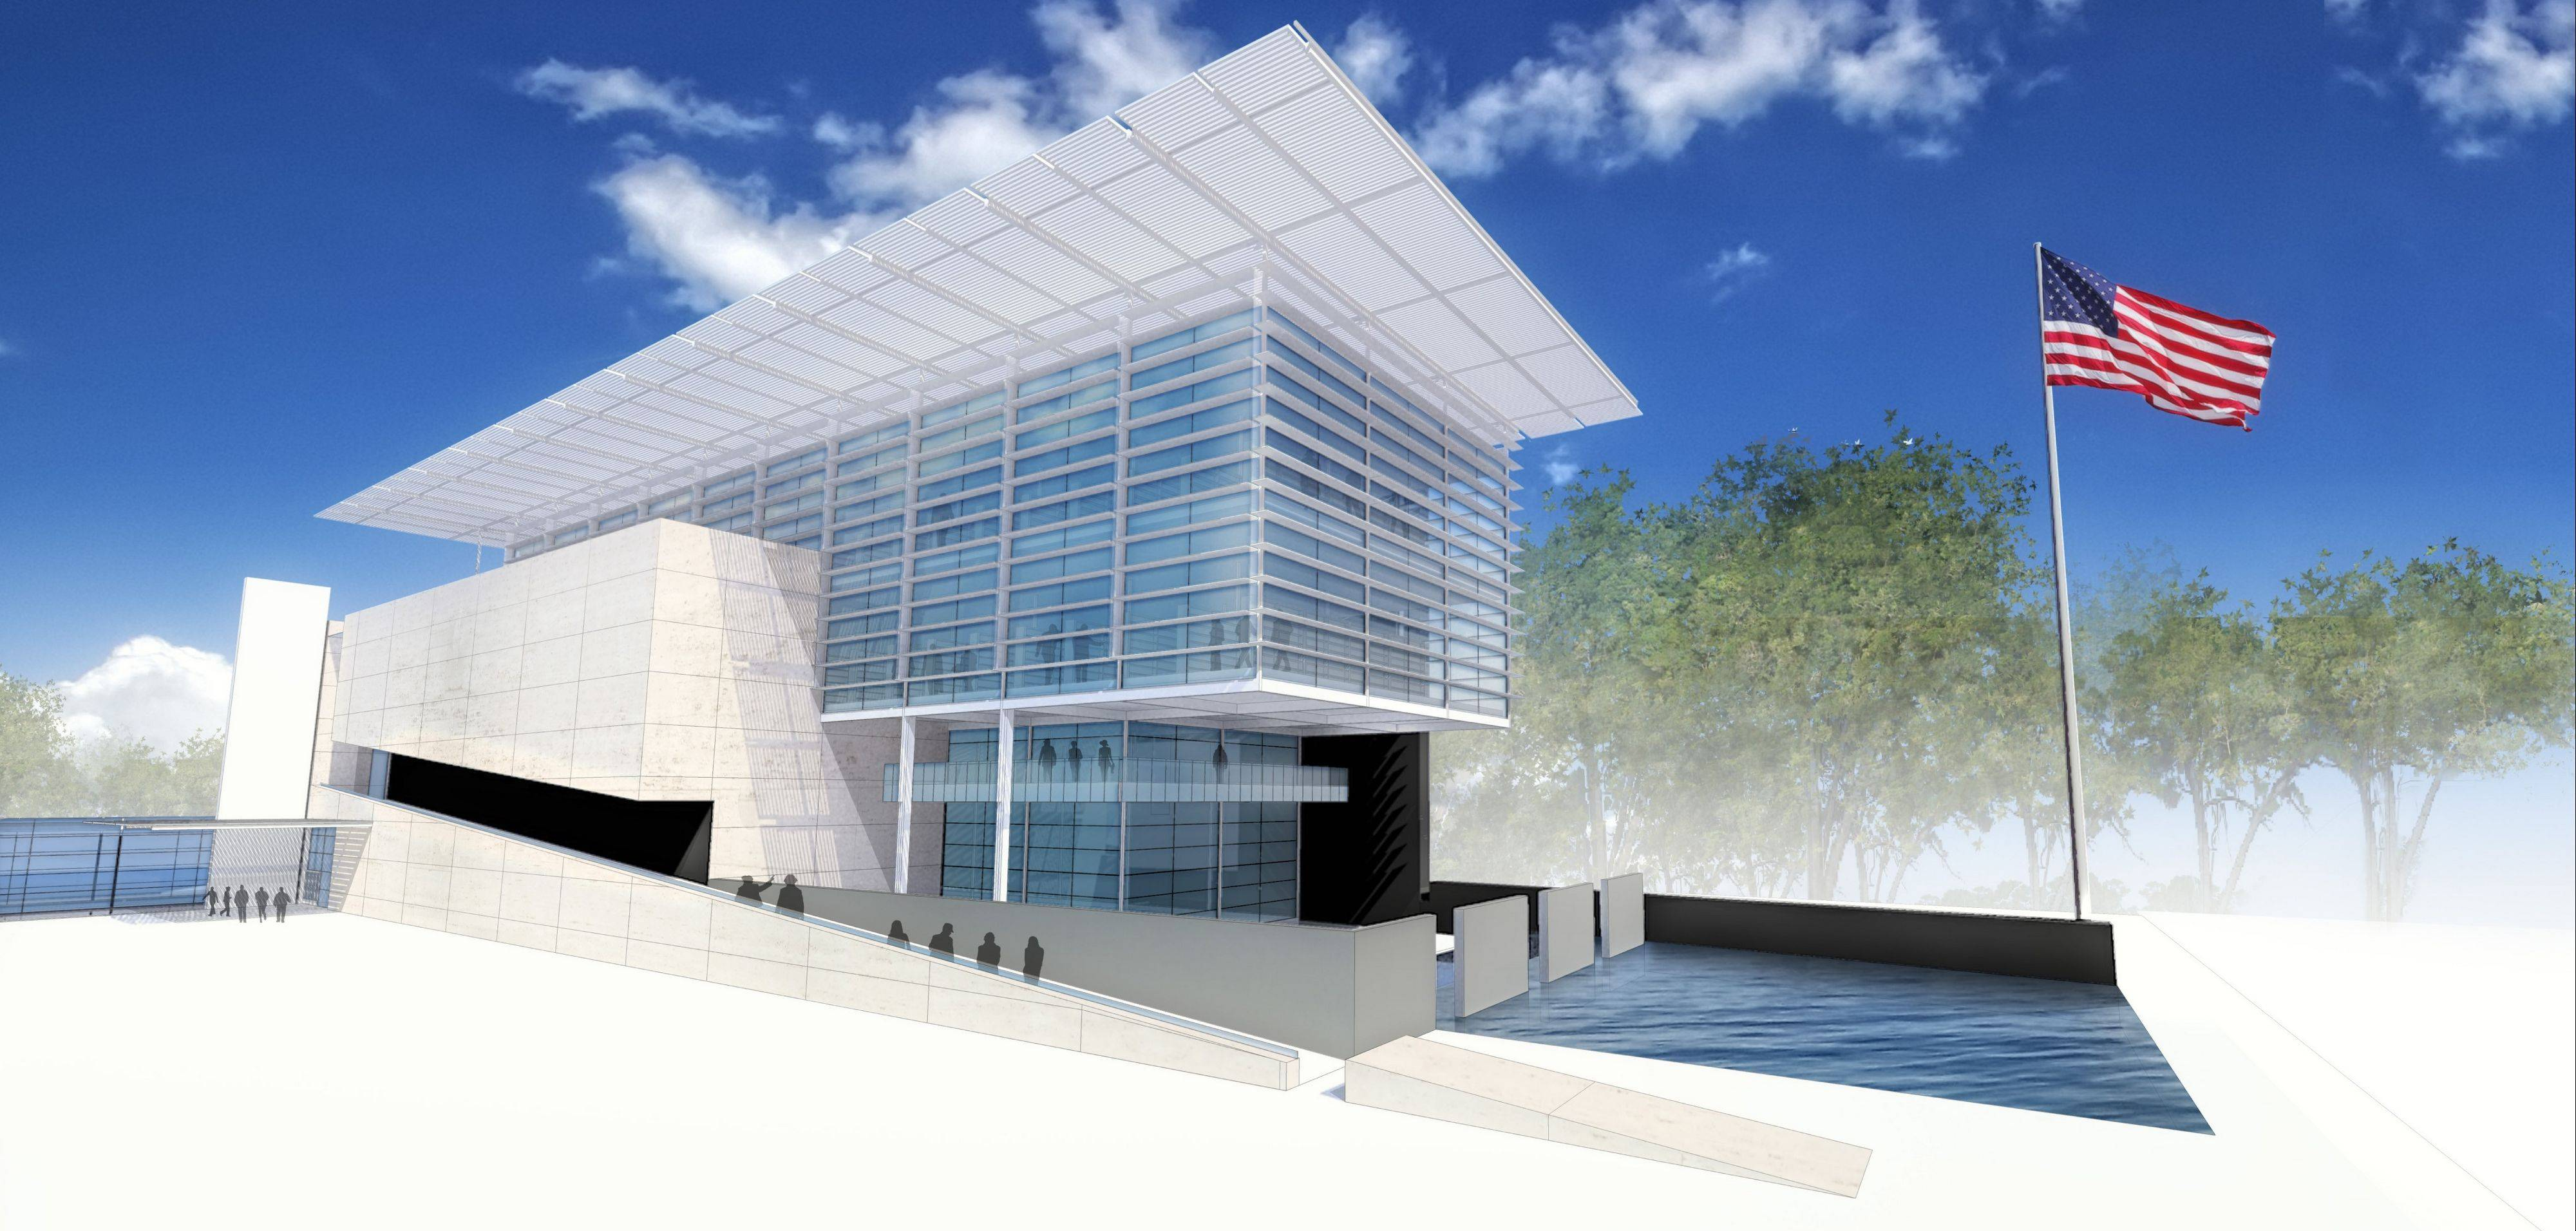 This rendering shows what the exterior of the proposed National Veterans Museum might look like.